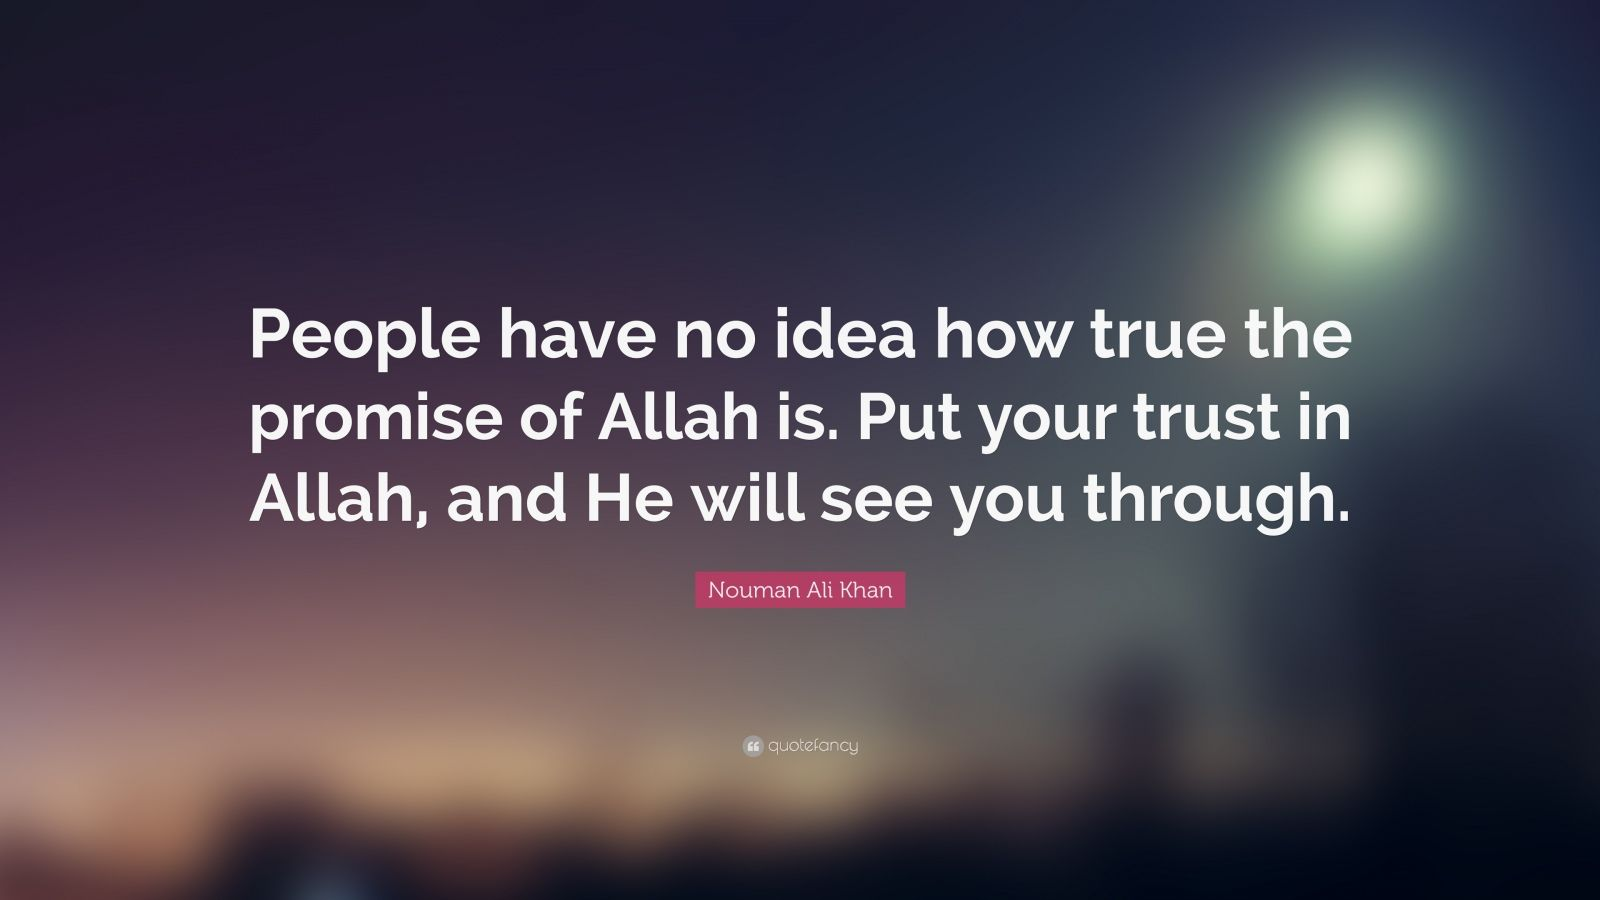 """Nouman Ali Khan Quote: """"People have no idea how true the promise of Allah is. Put your trust in Allah, and He will see you through."""""""